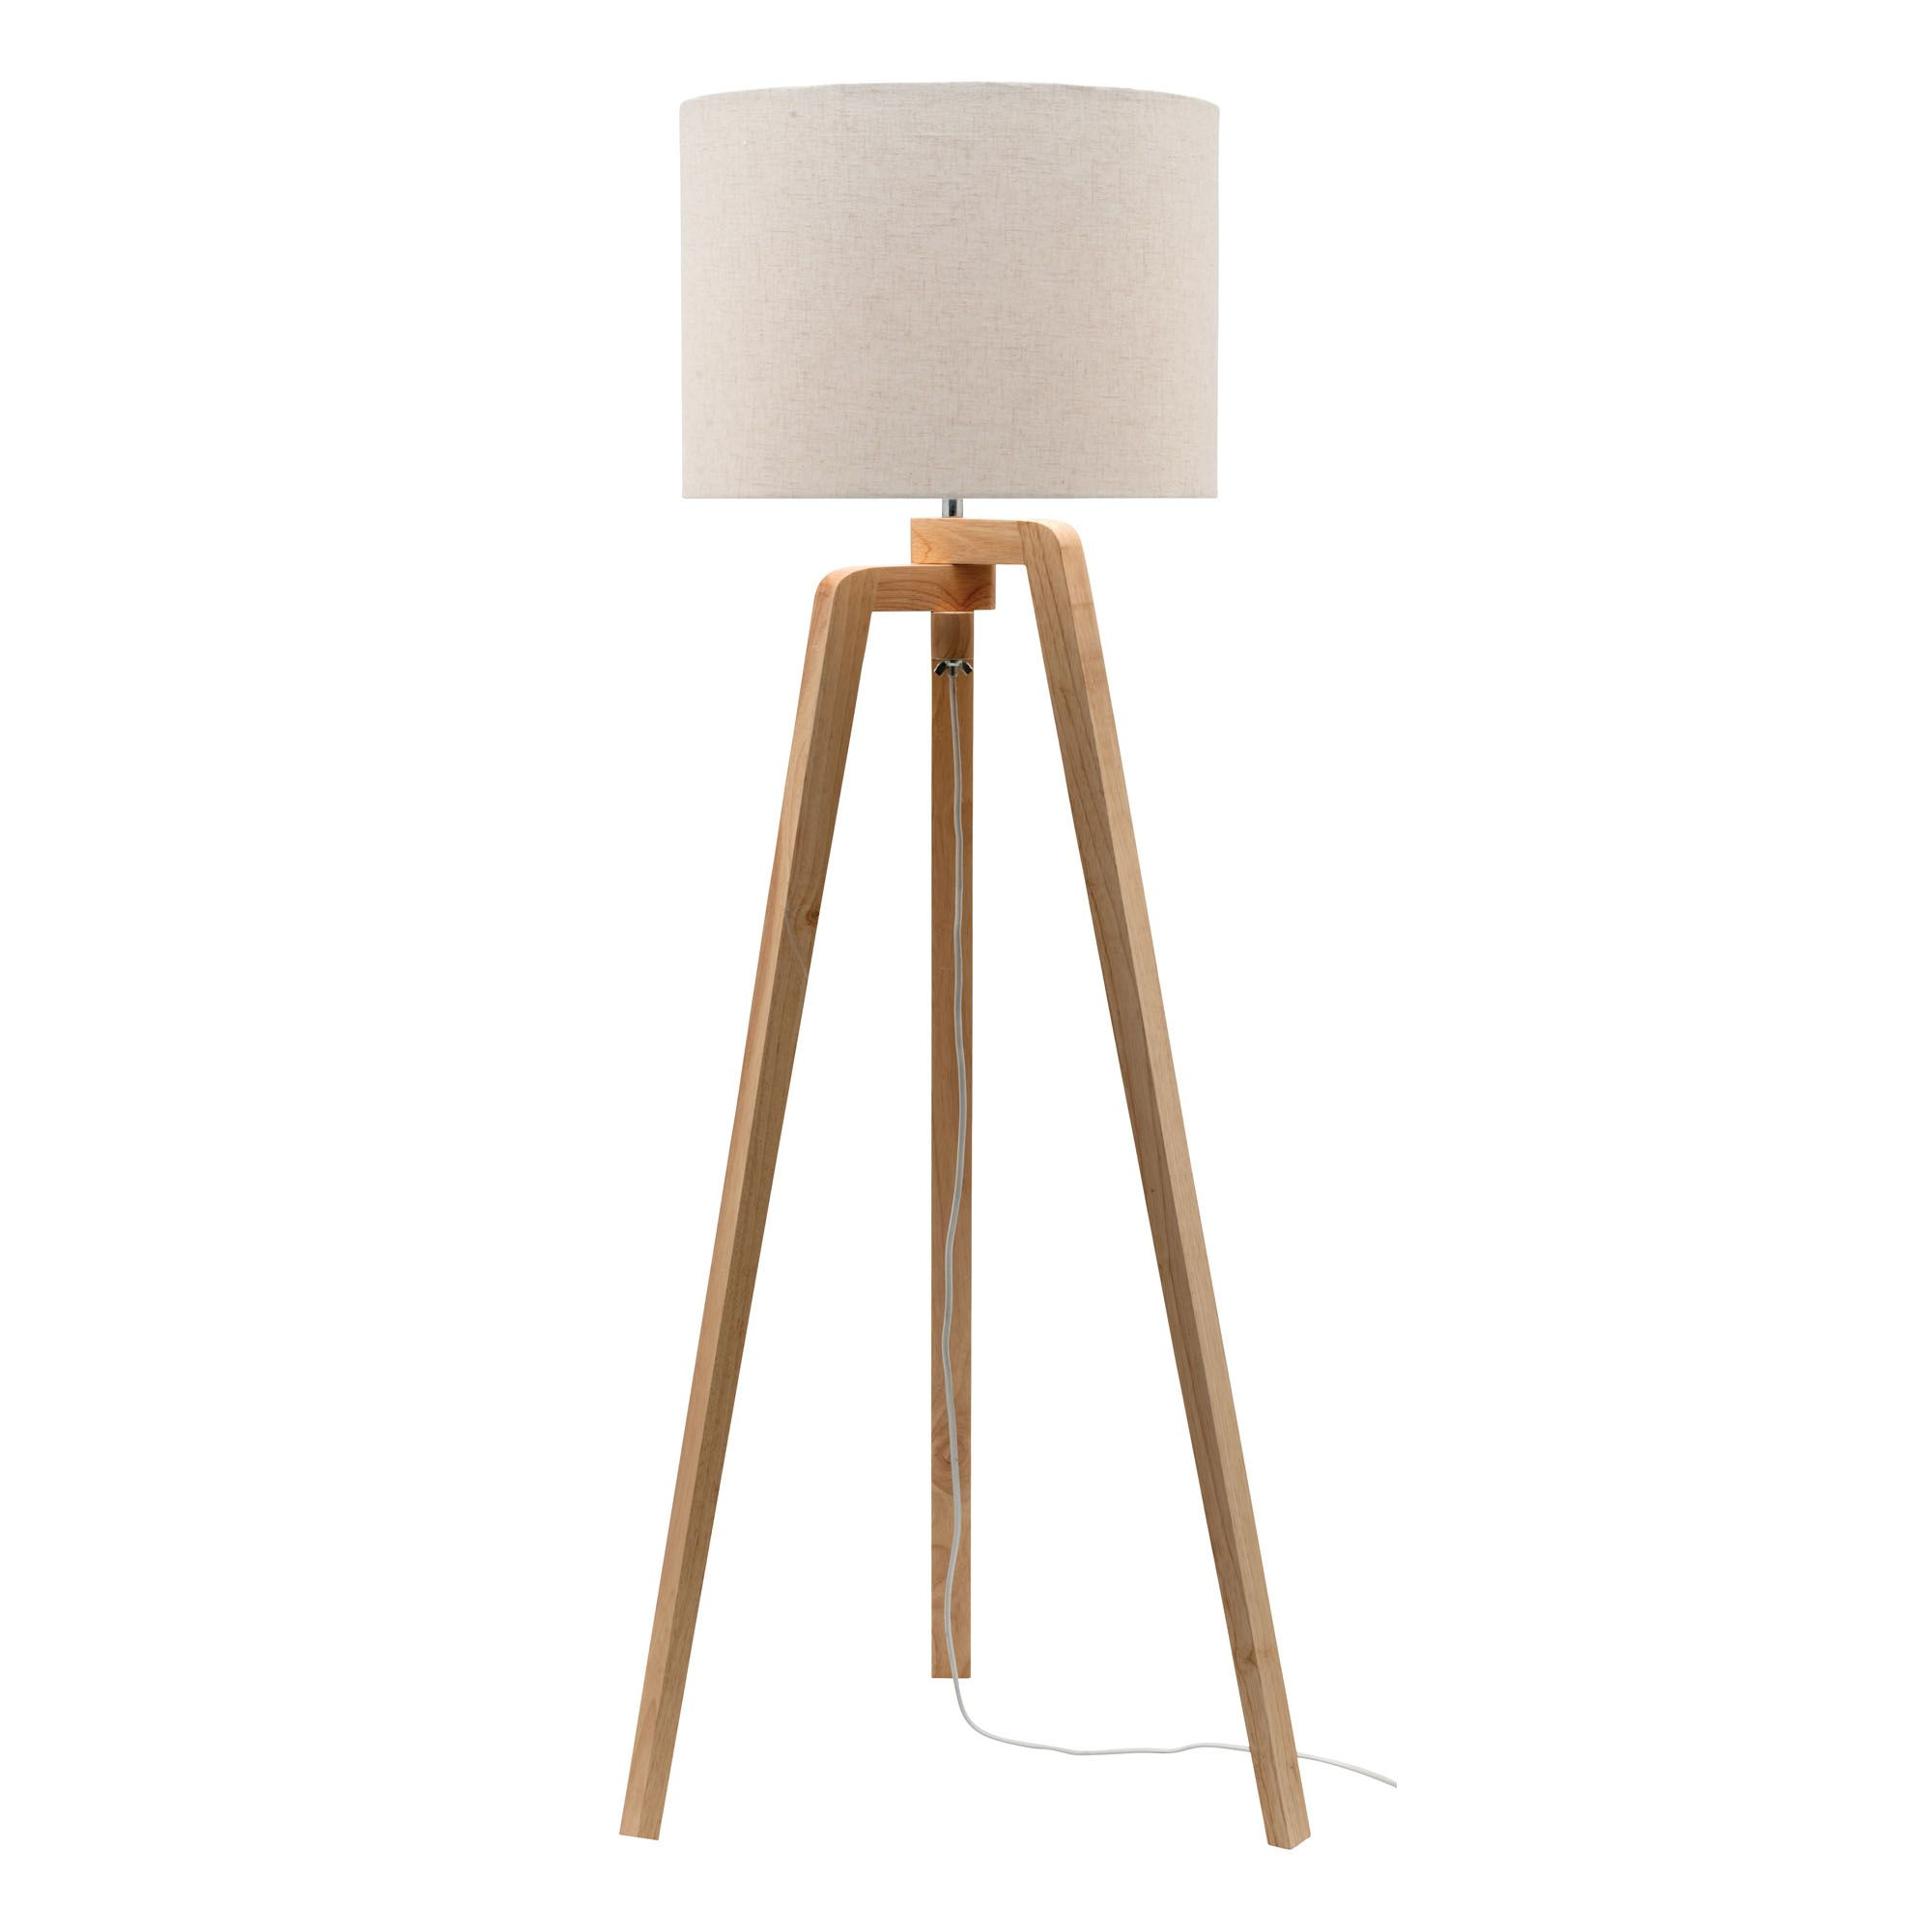 Mercator S Tarifa Floor Lamp Is A One Of A Kind Lamp That Adds Simplicity And Moderness To An Open Room Features Includ Floor Lamp Lamp Decorative Floor Lamps